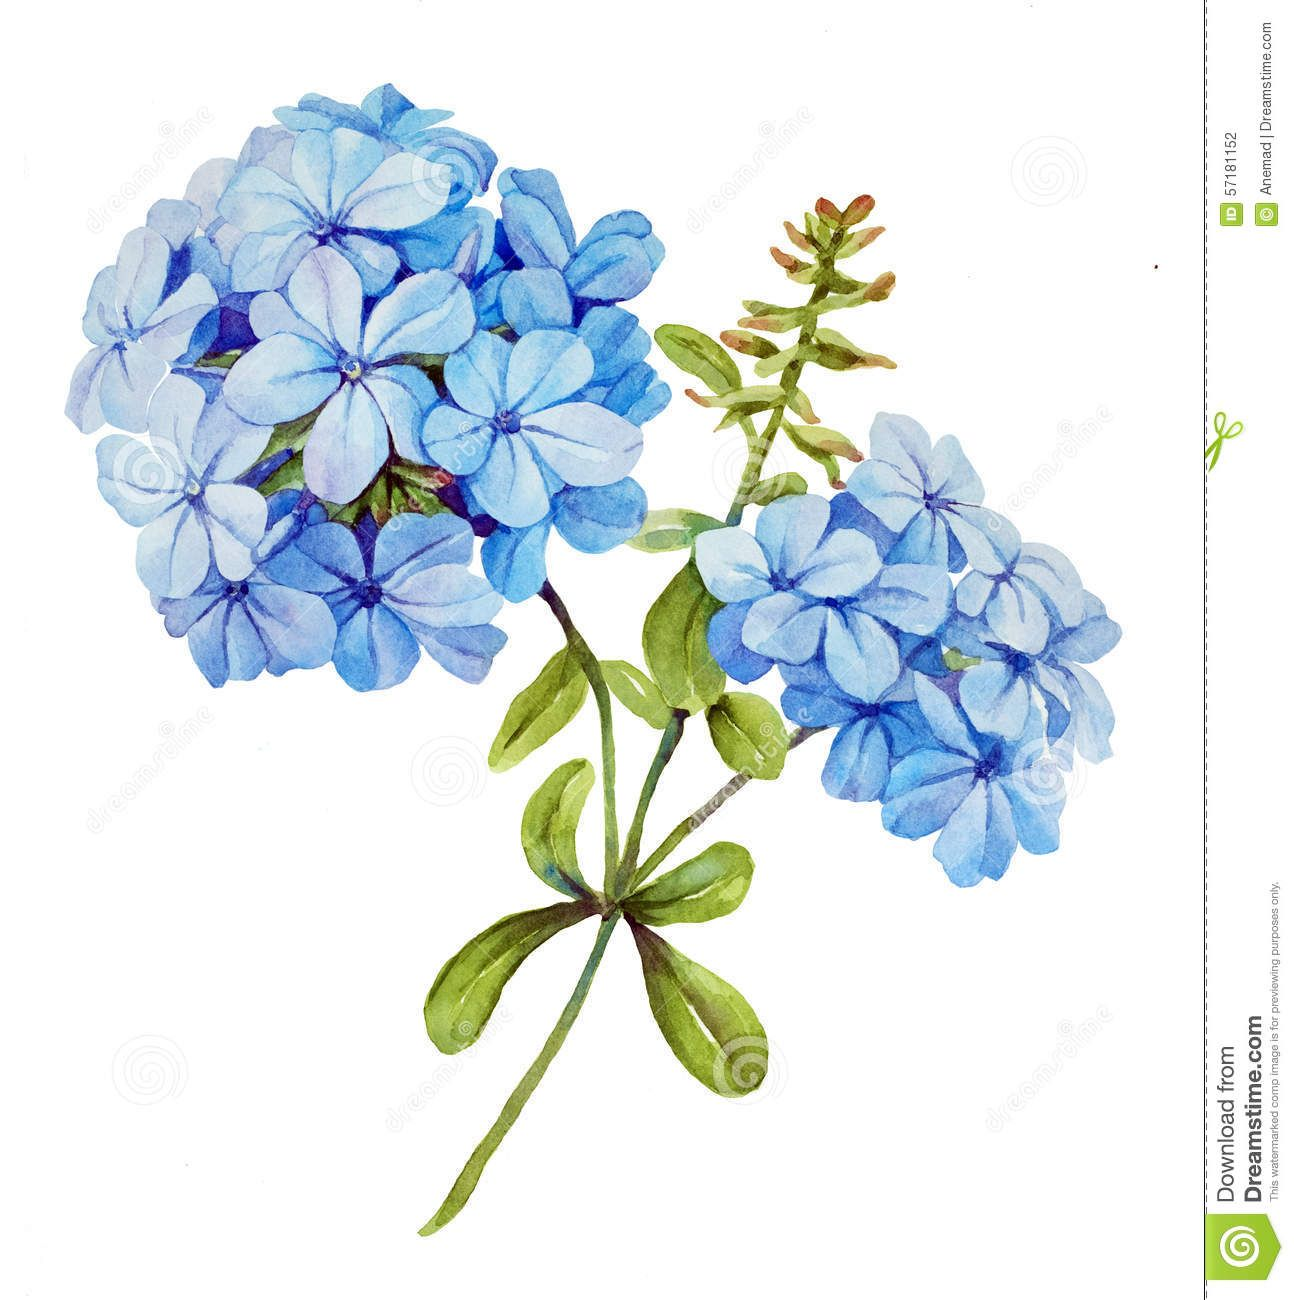 Lily clipart blue jasmine. Watercolor flower download from